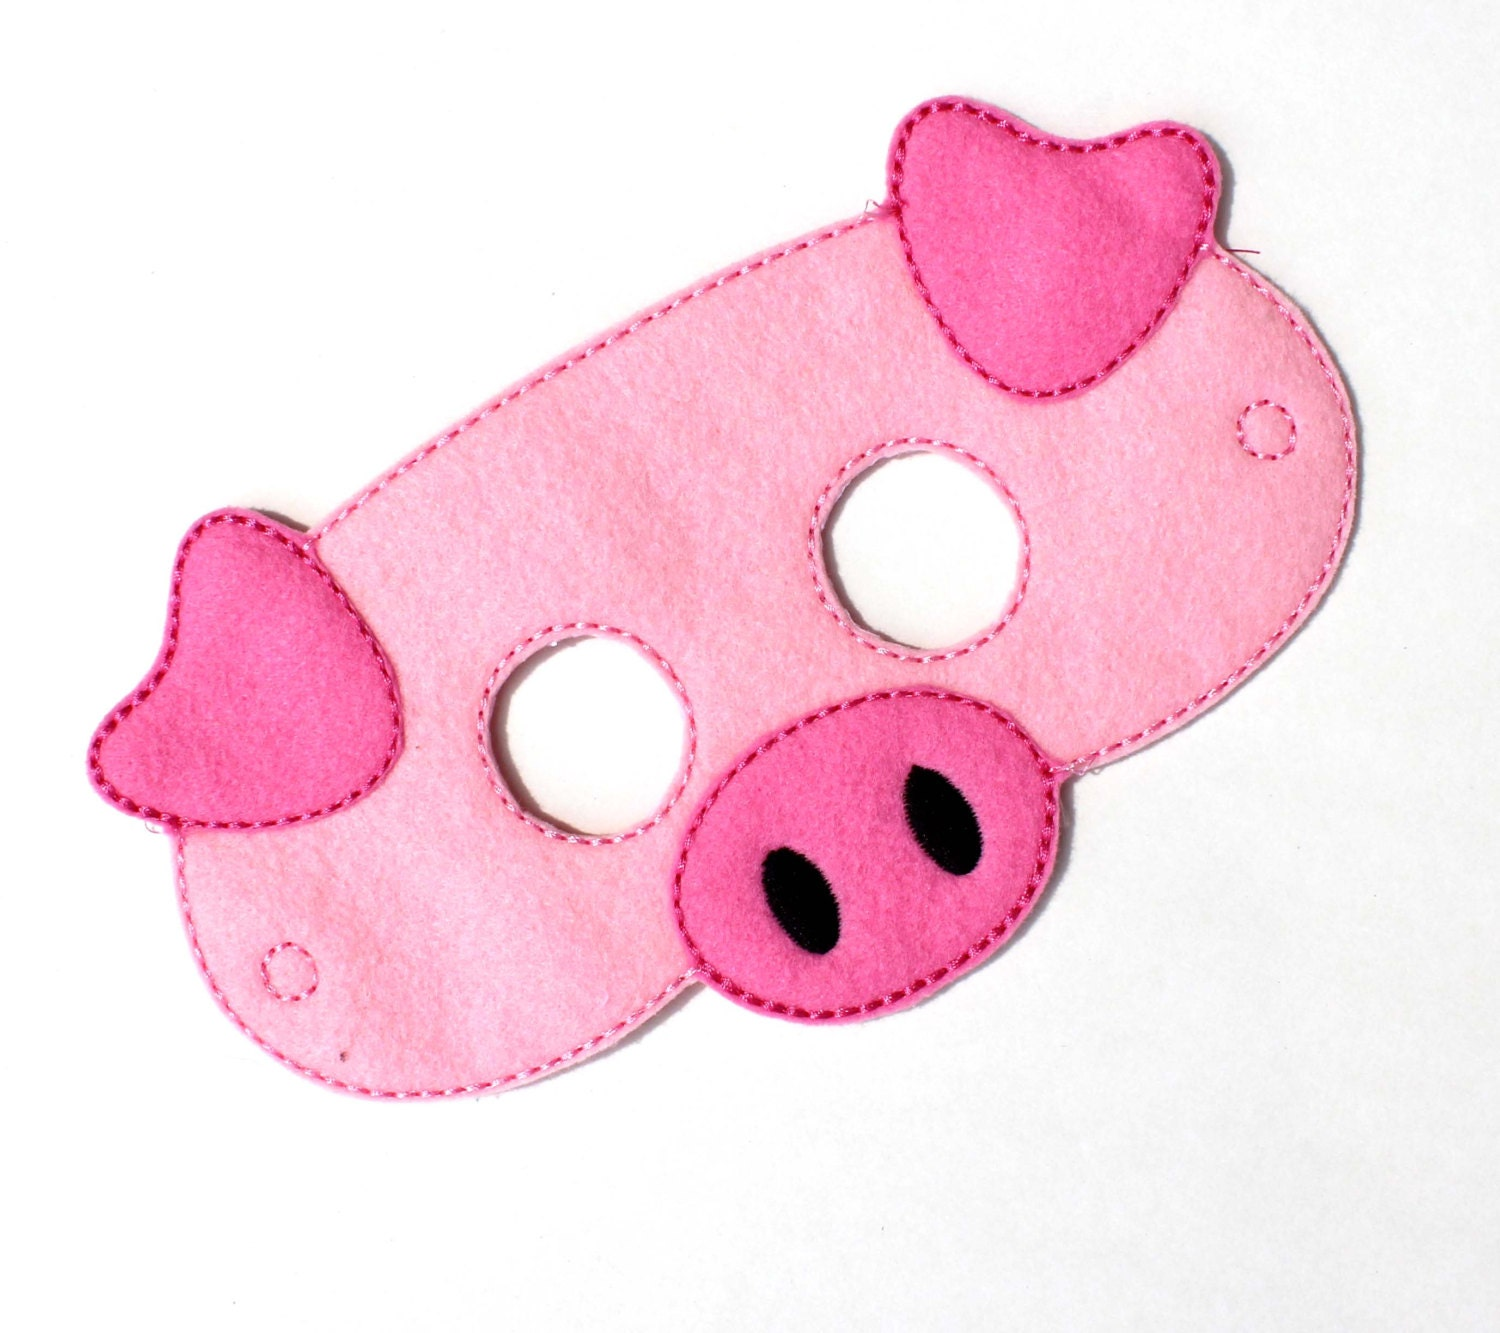 Uncategorized Pig Mask kids pig mask chicken costume felt maskkids face mask